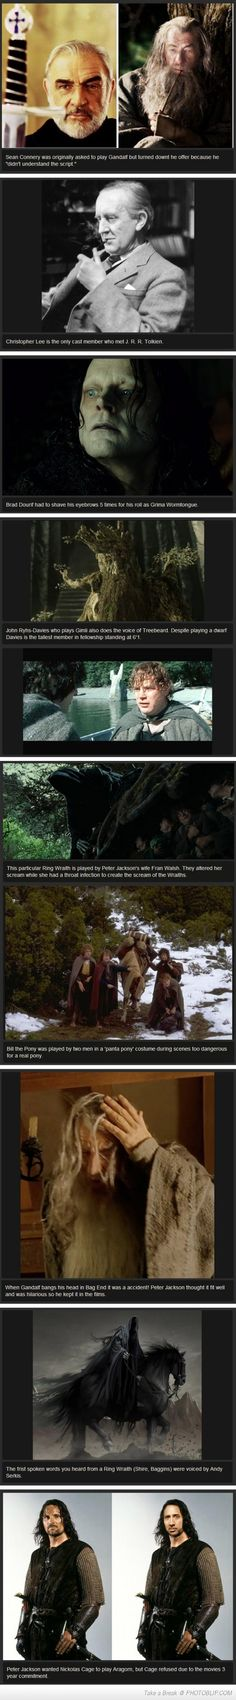 A couple facts about The Lord of the Rings.